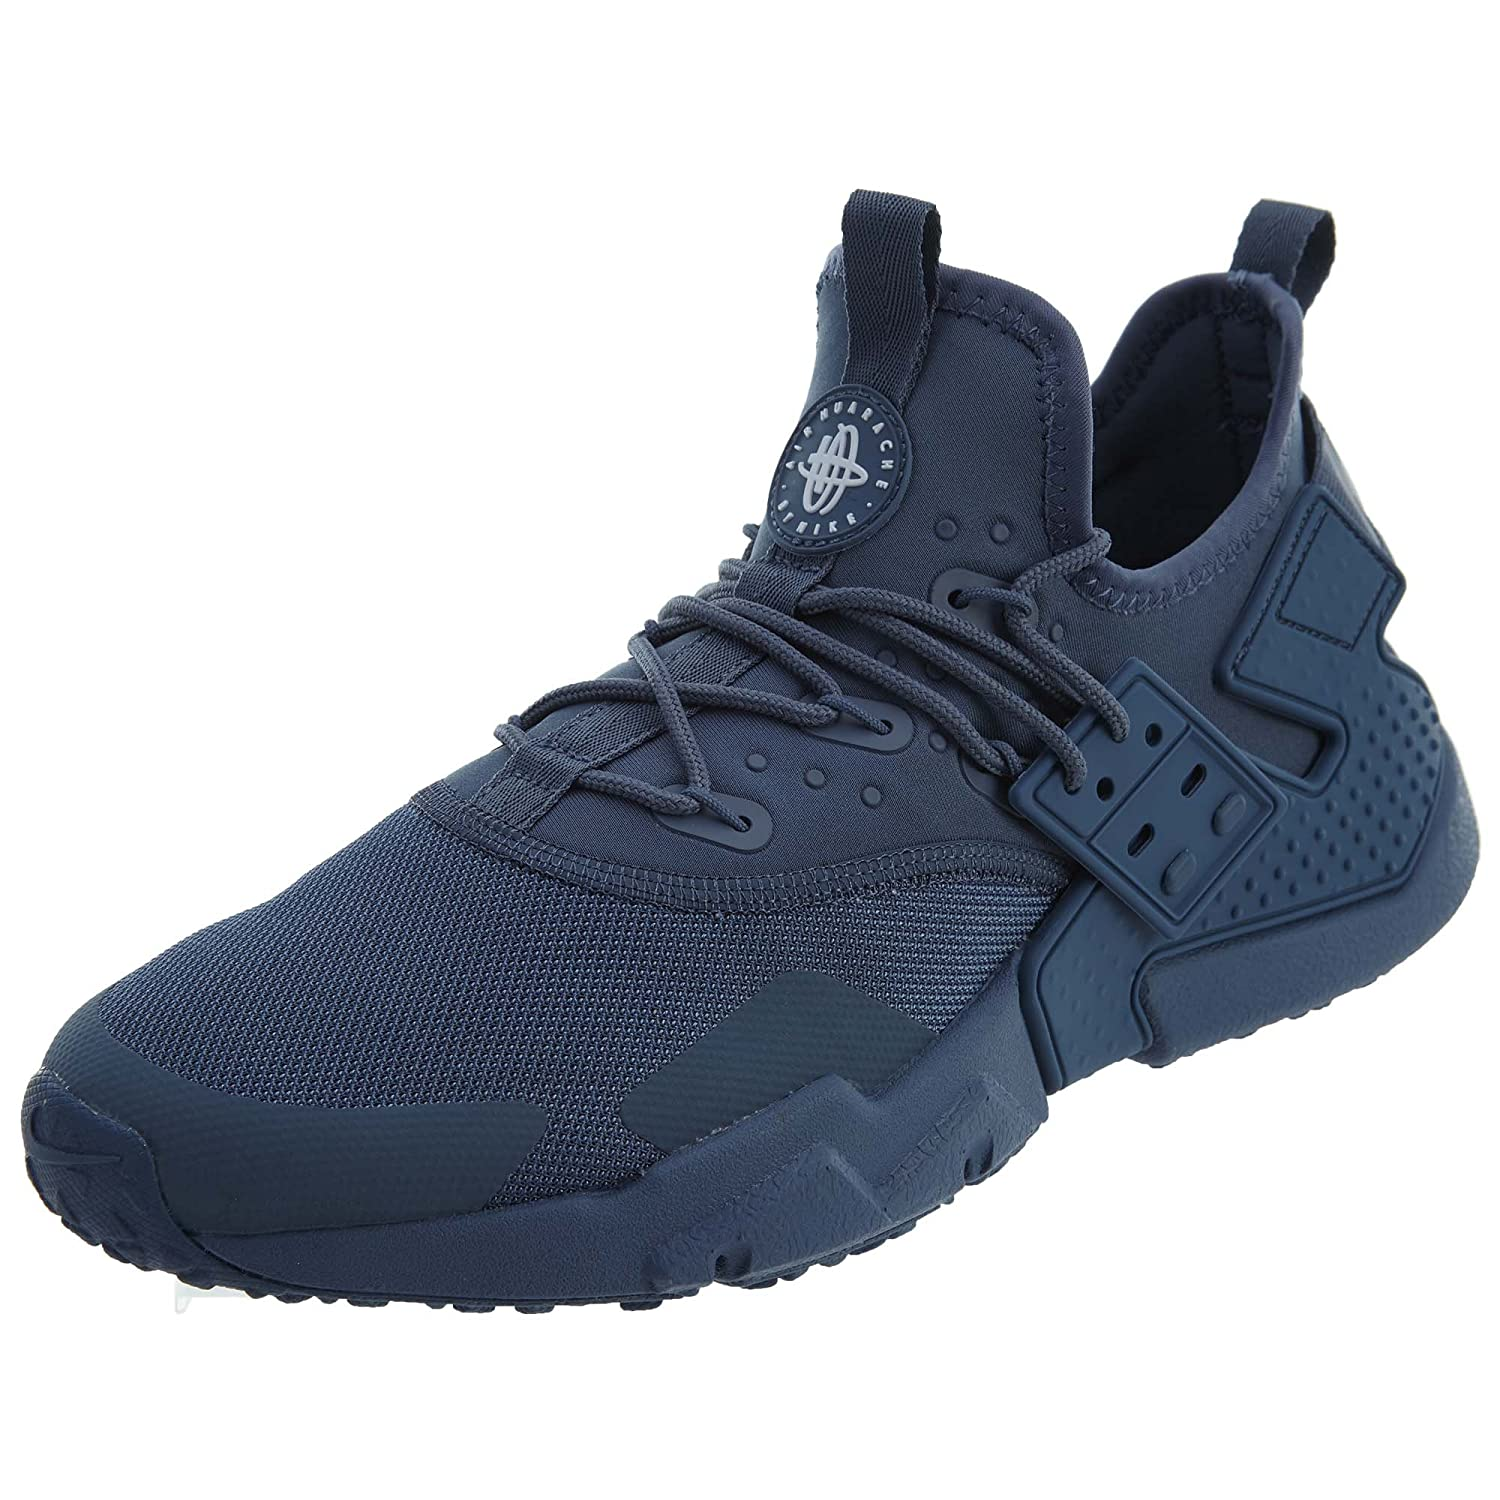 hot sale online 843d9 f2496 Amazon.com   Nike Air Huarache Drift Men s Shoes Diffused Blue White  ah7334-400 (10 D(M) US)   Athletic